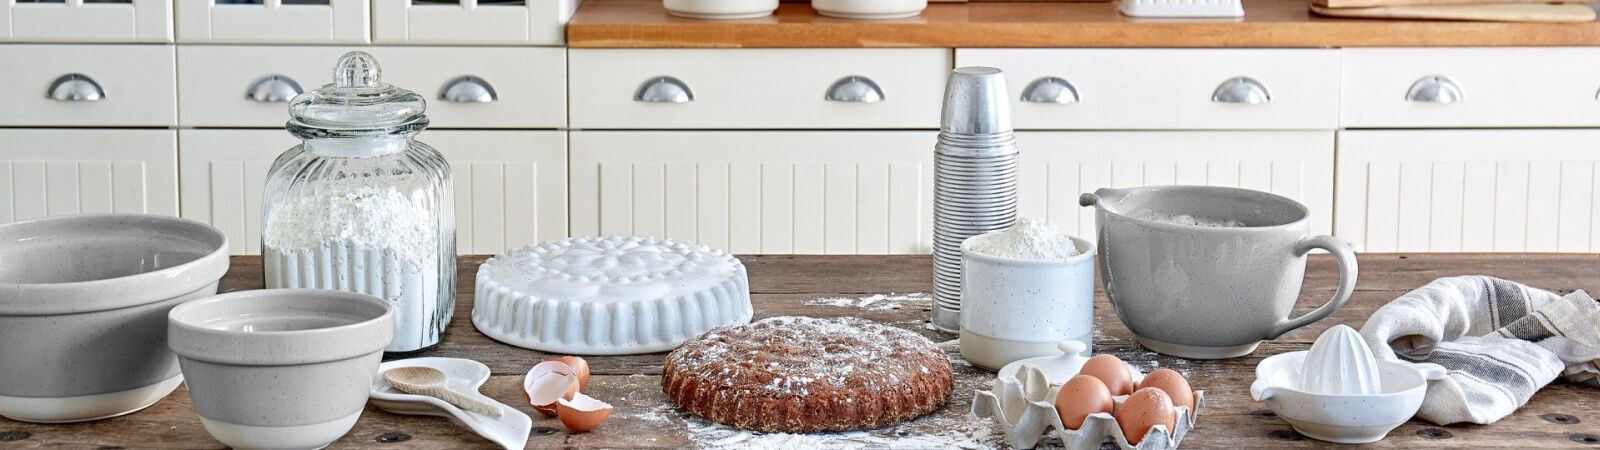 Casafina Kitchenware, Cookware, and Bakeware available at Sportique.com